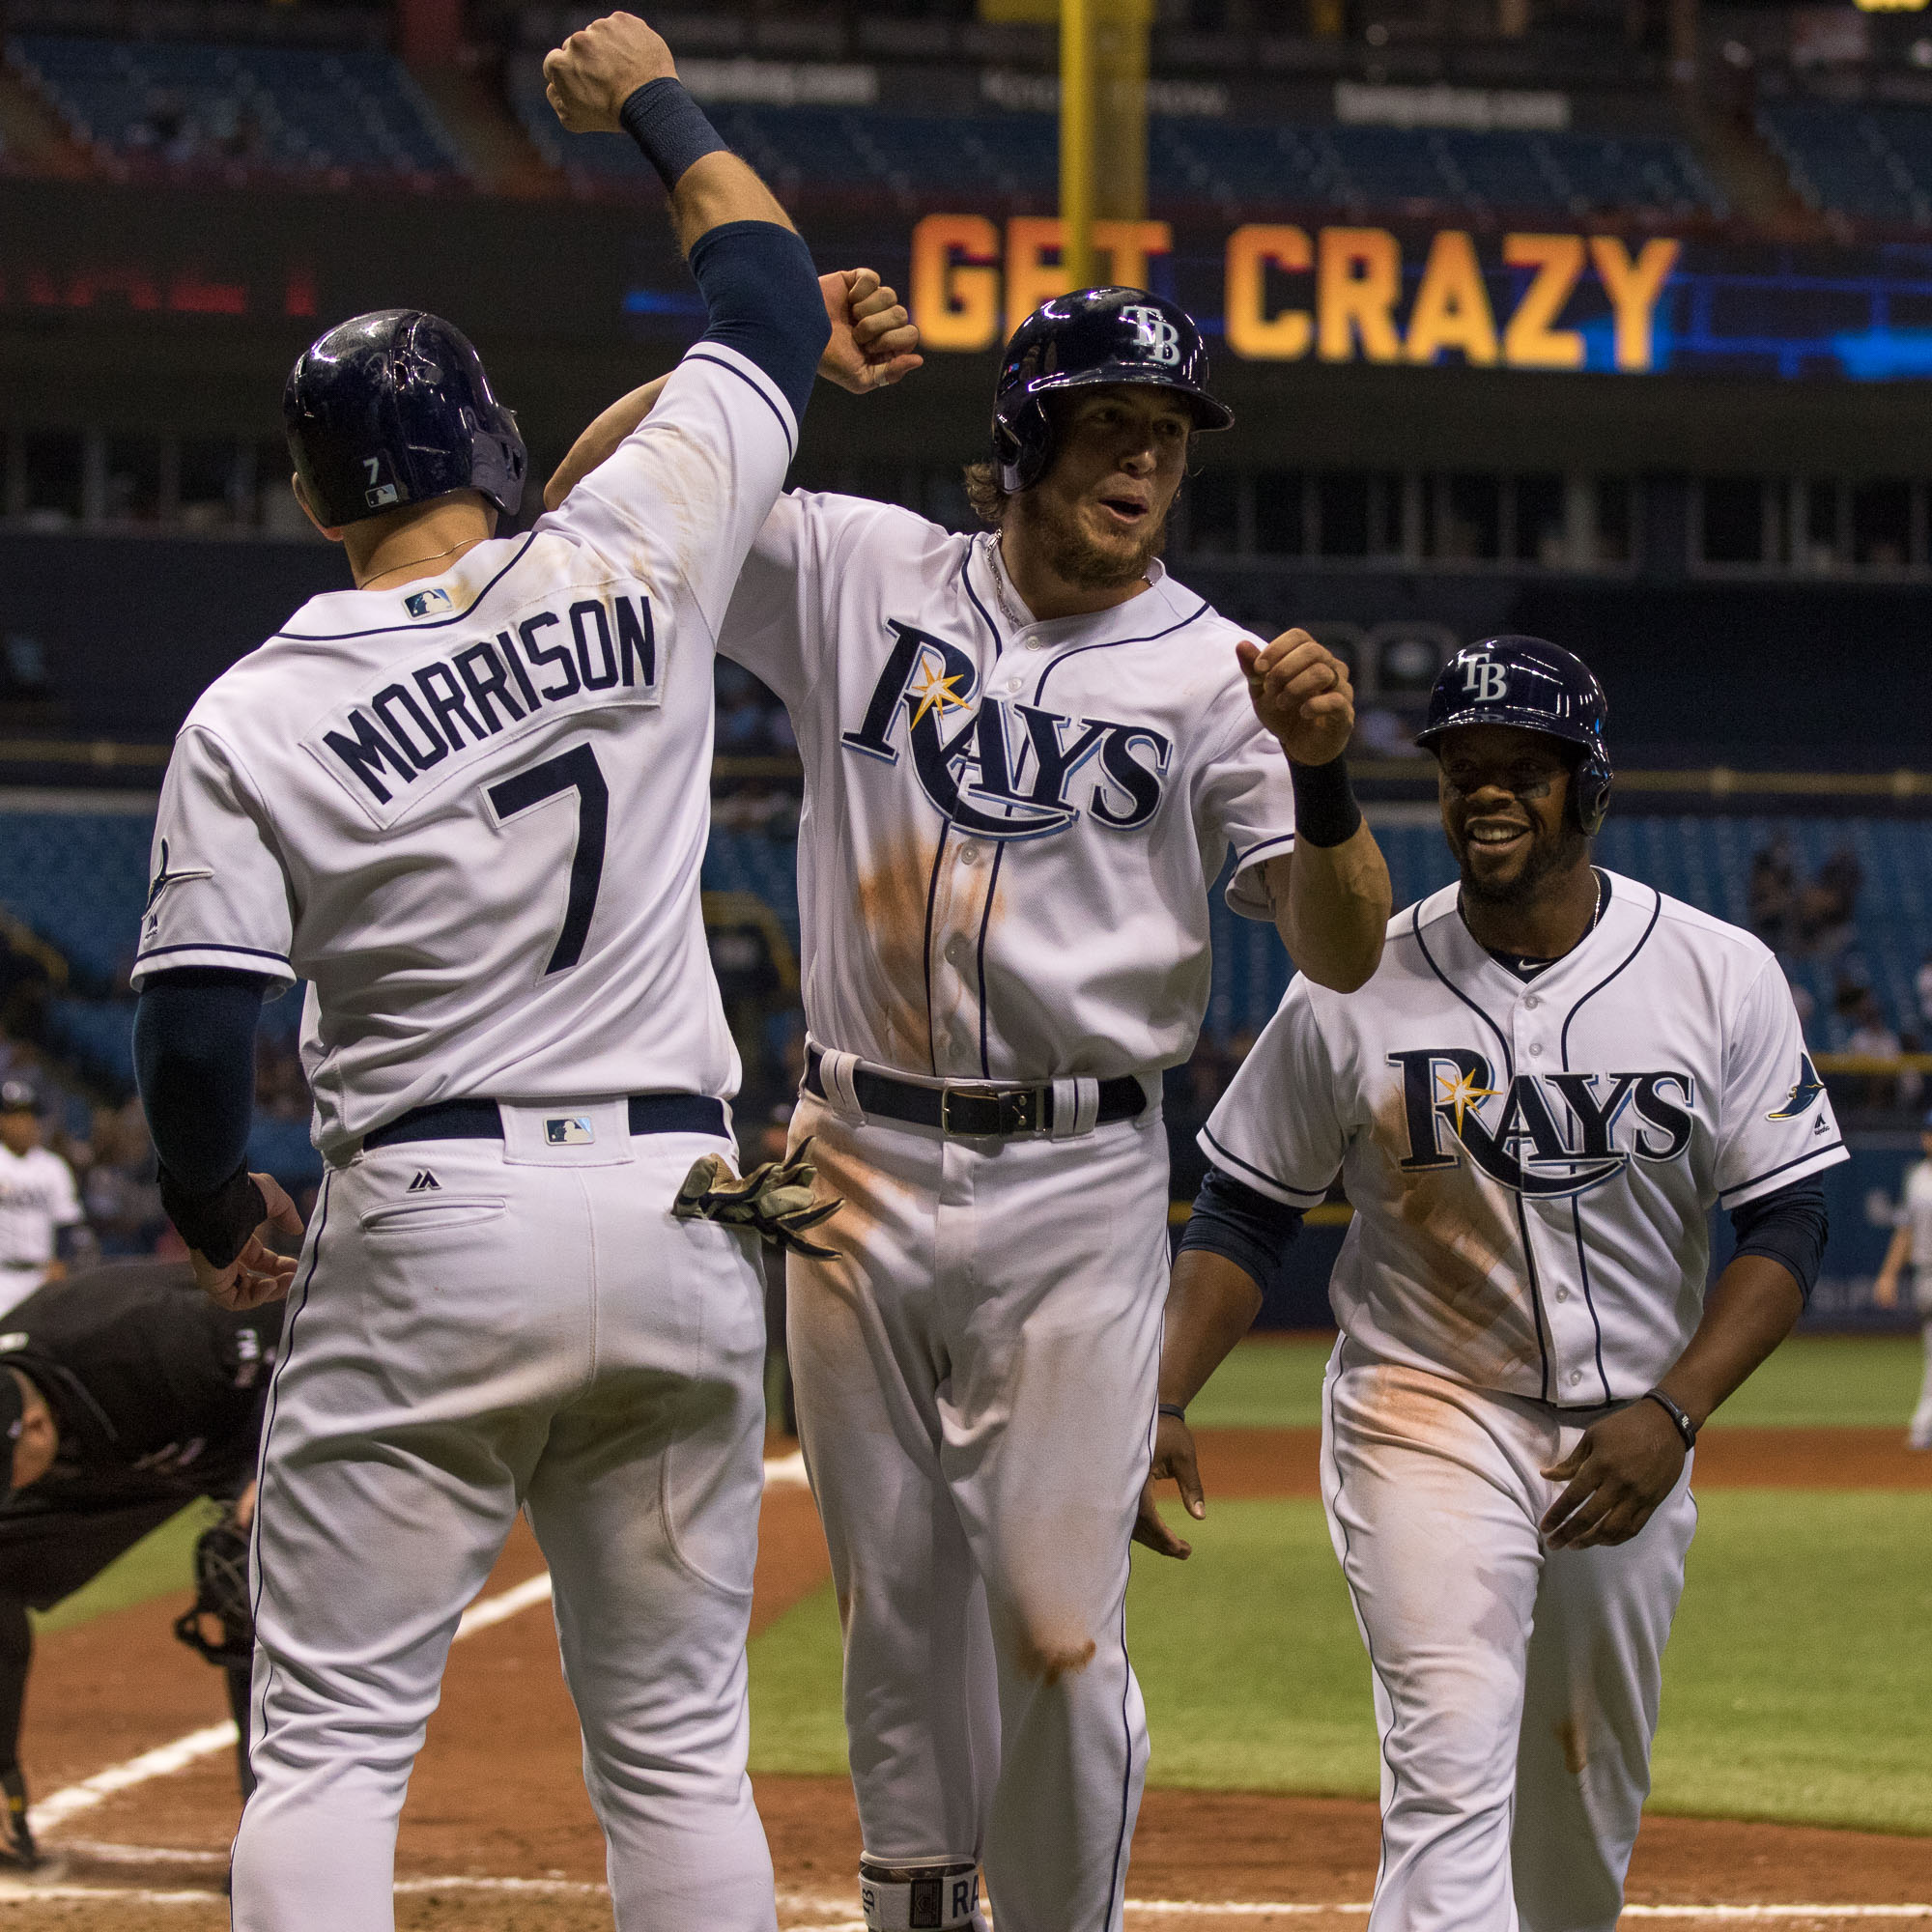 Colby Rasmus celebrates after hitting a grand slam./STEVEN MUNCIE